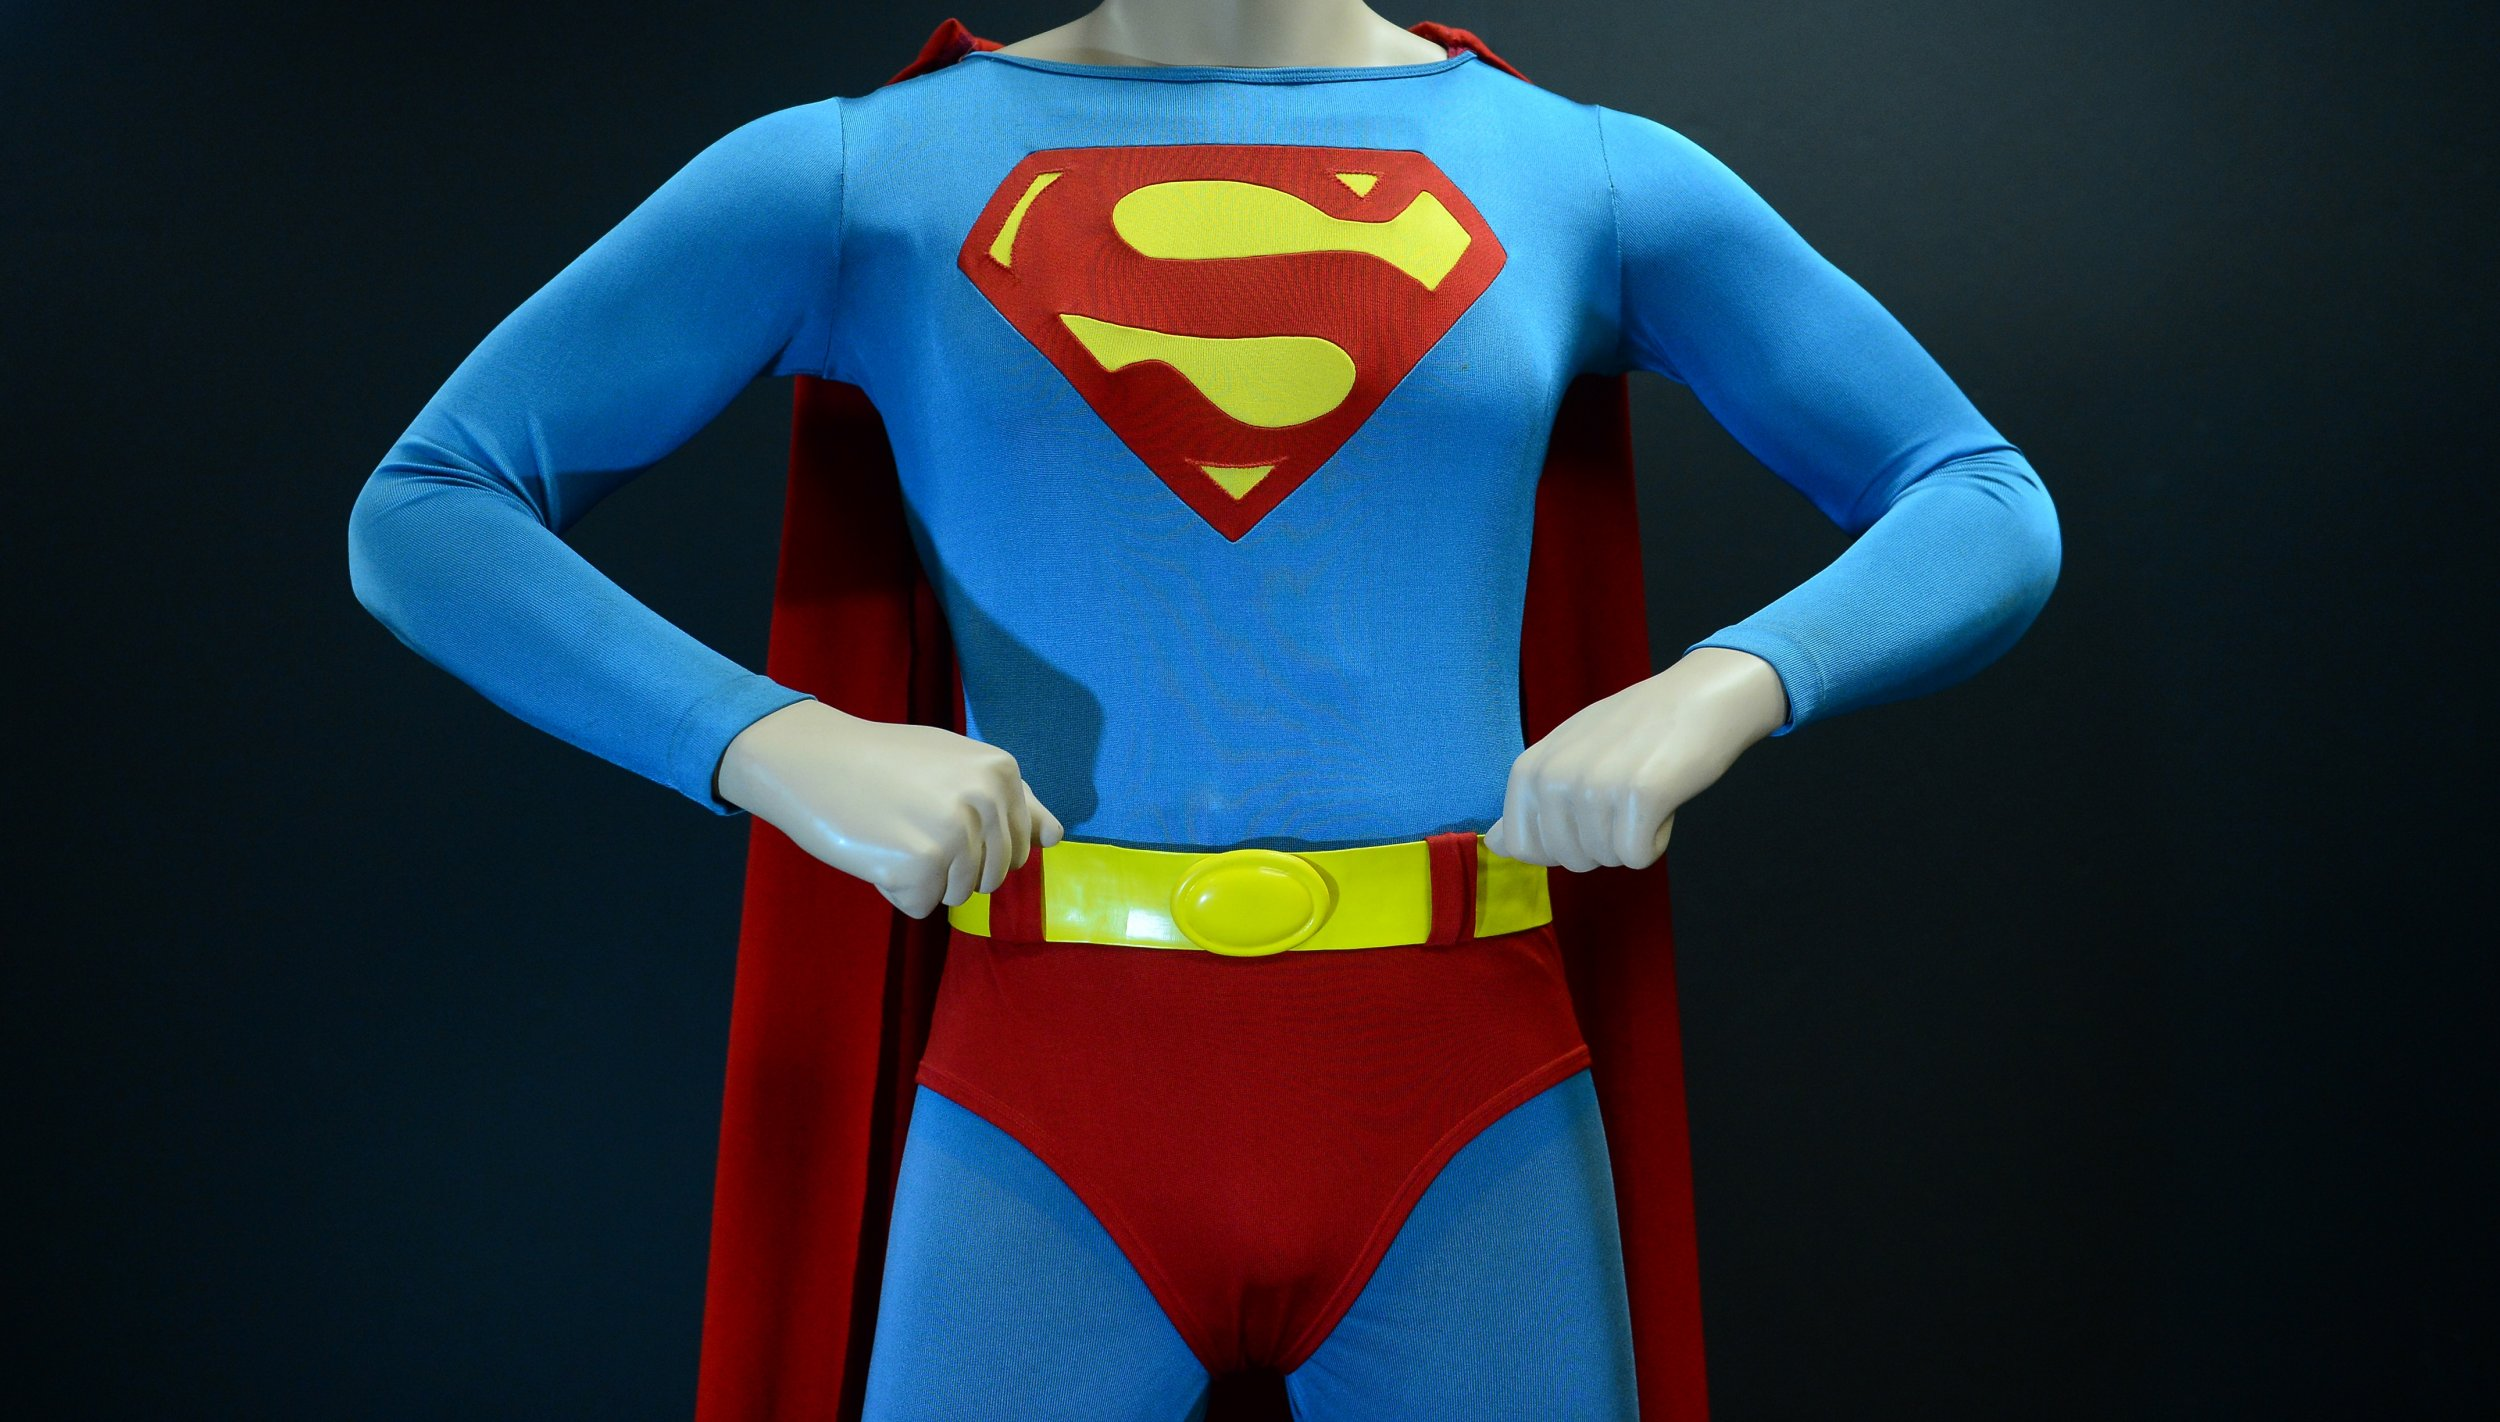 09_13_superman_power_pose